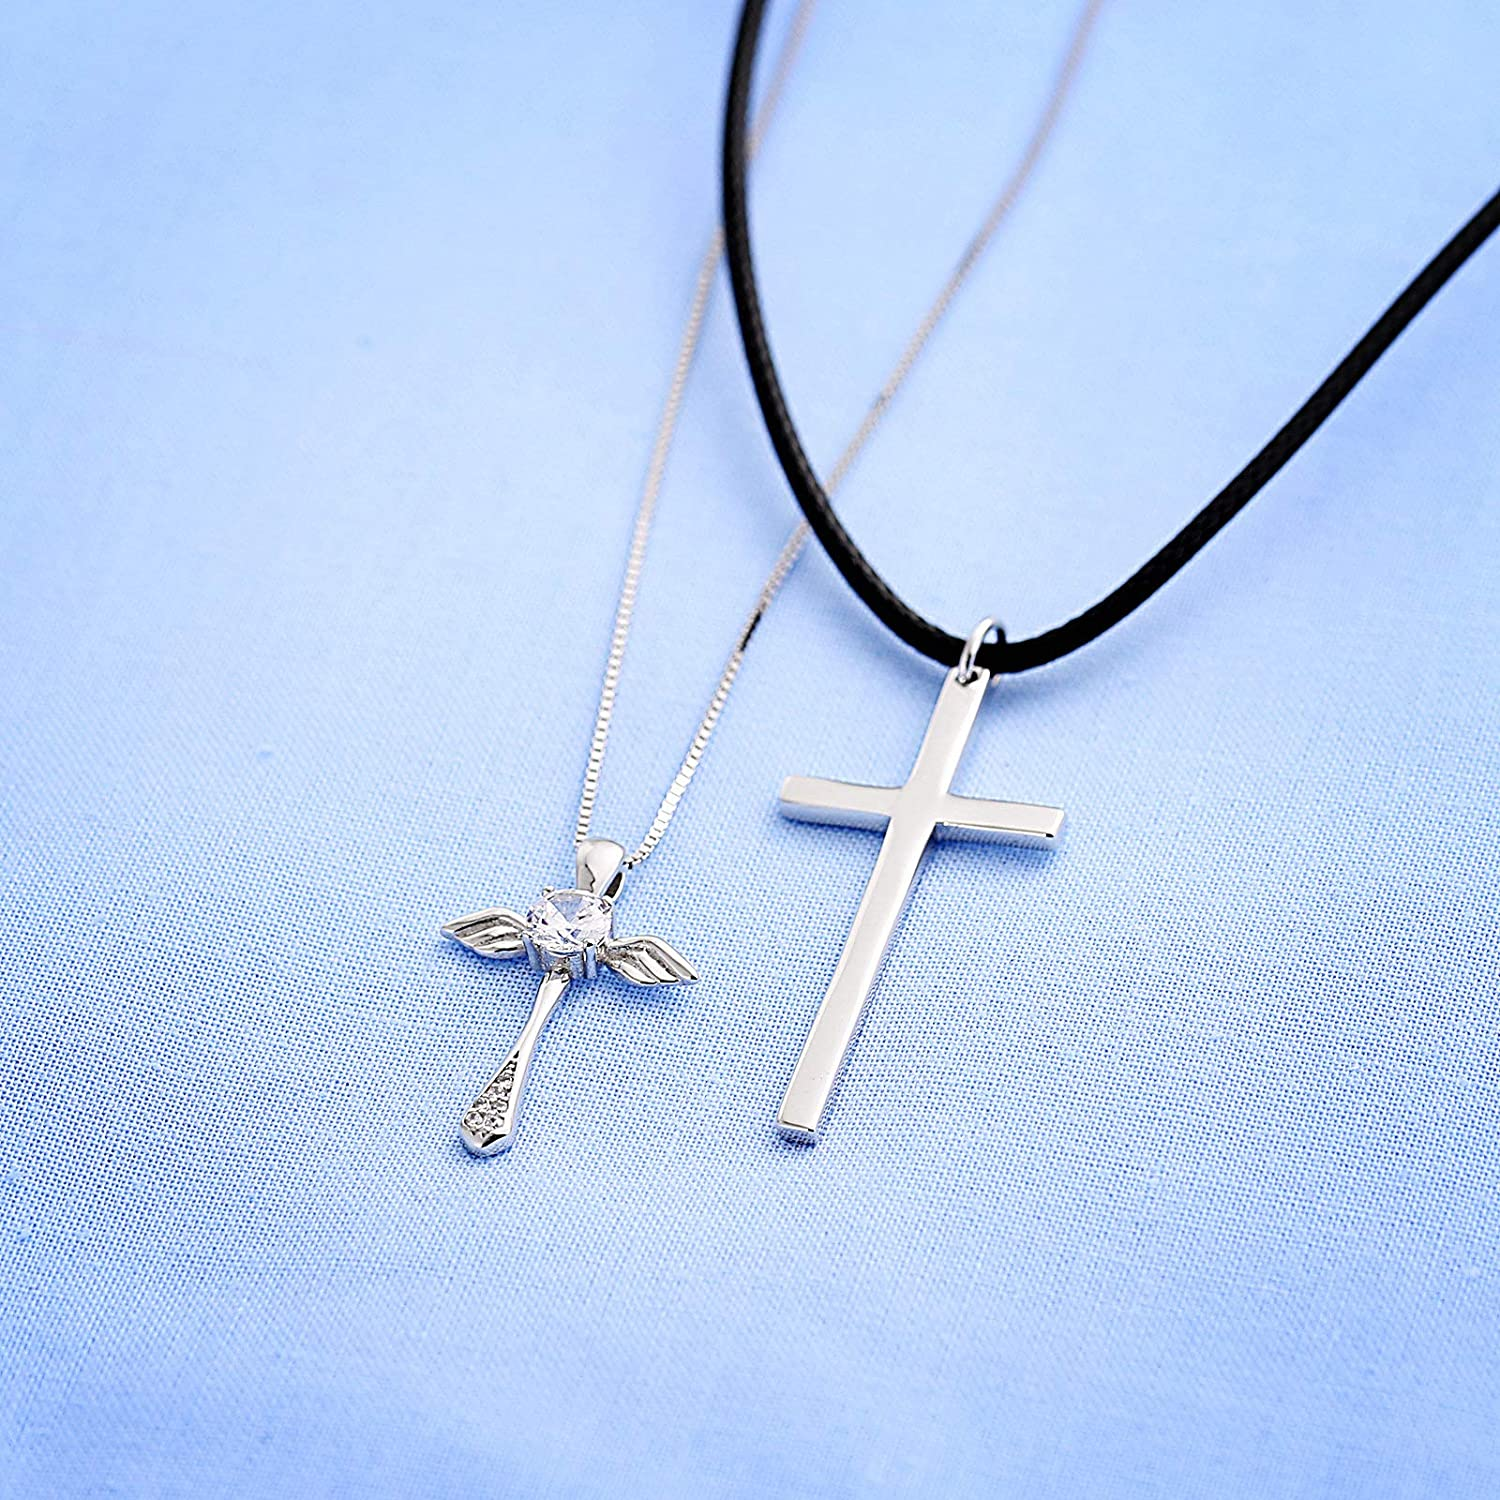 ANAZOZ Fashion Necklace Pendant Punk Style Stainless Steel Wing Silver Pendant Necklace for Women Men